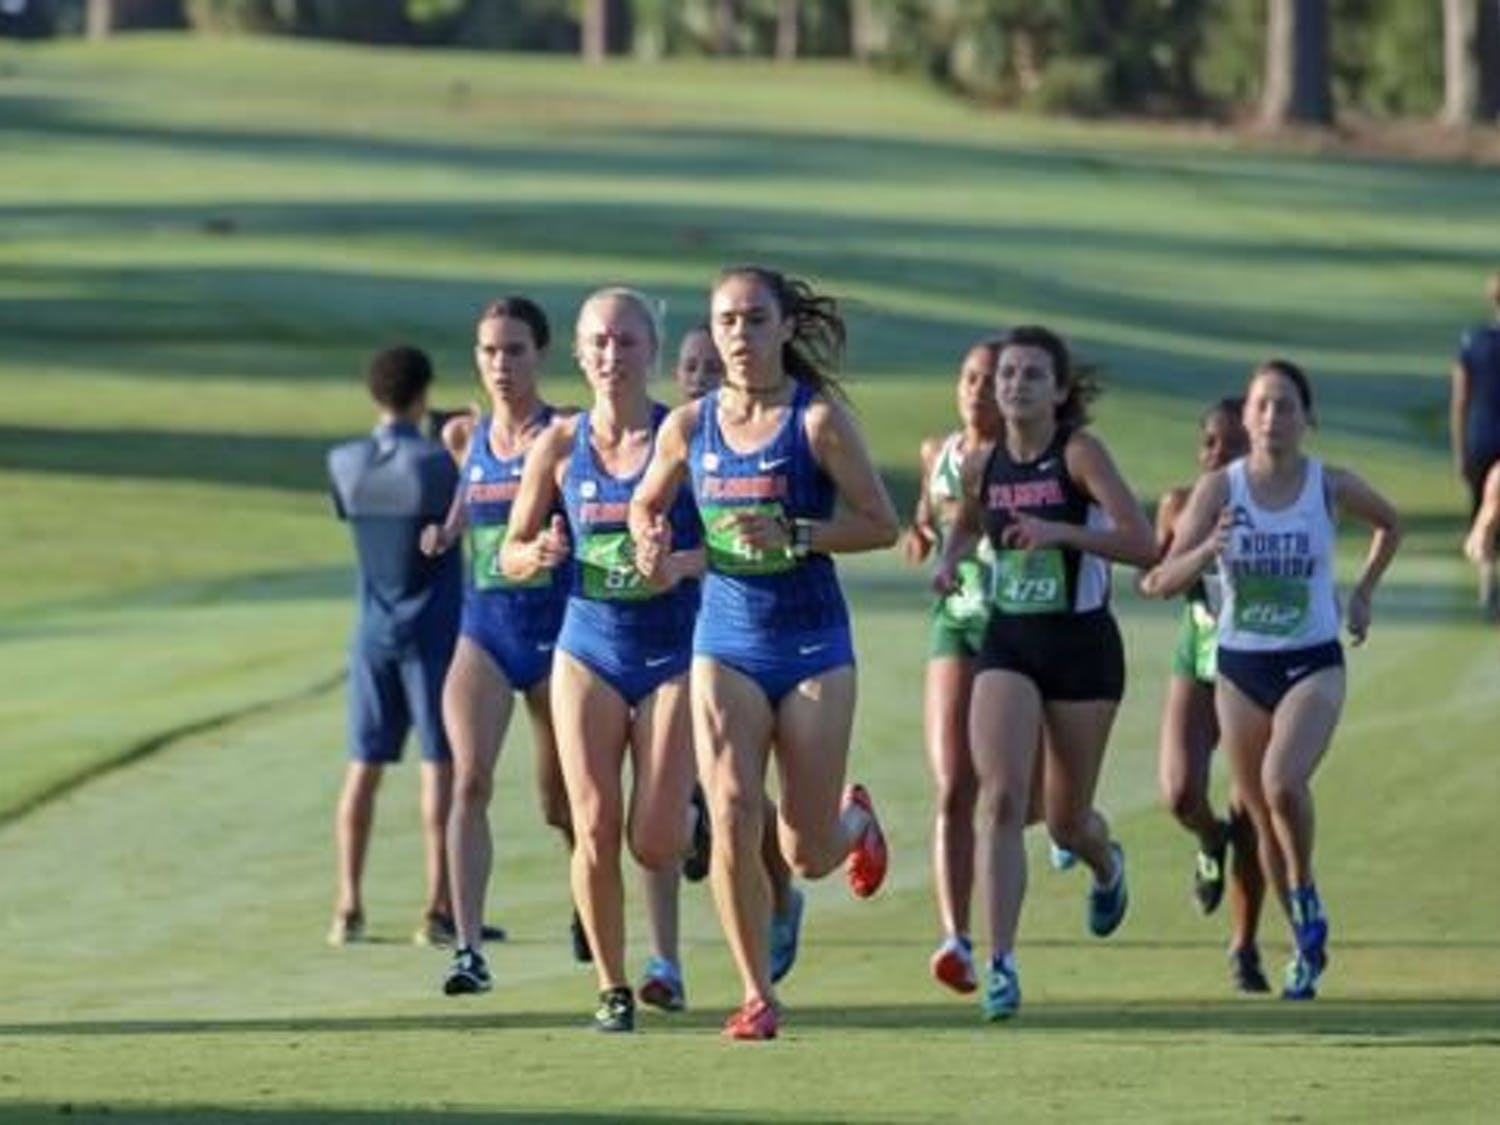 Both Gators squads finished in the top eight at the FSU Invitational Friday.